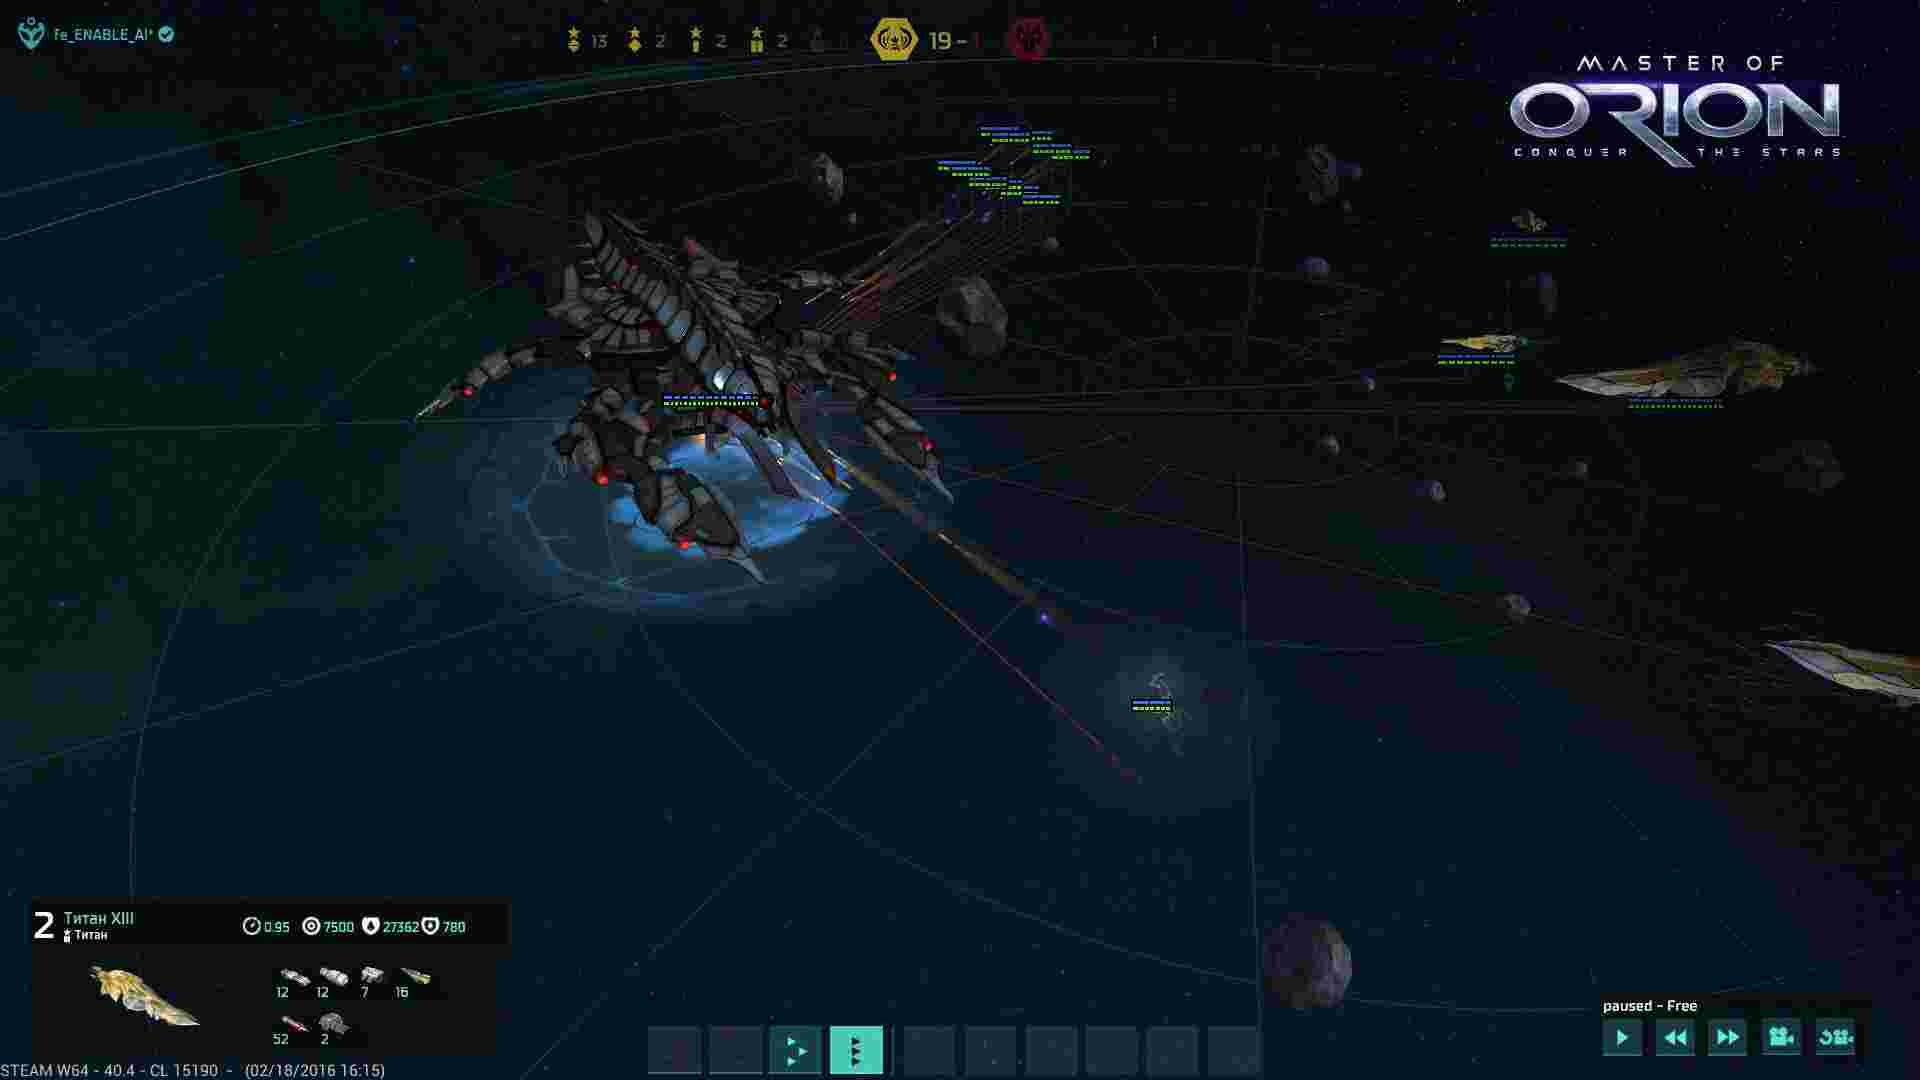 news.moo_screens_gameplay_early_access_image_08